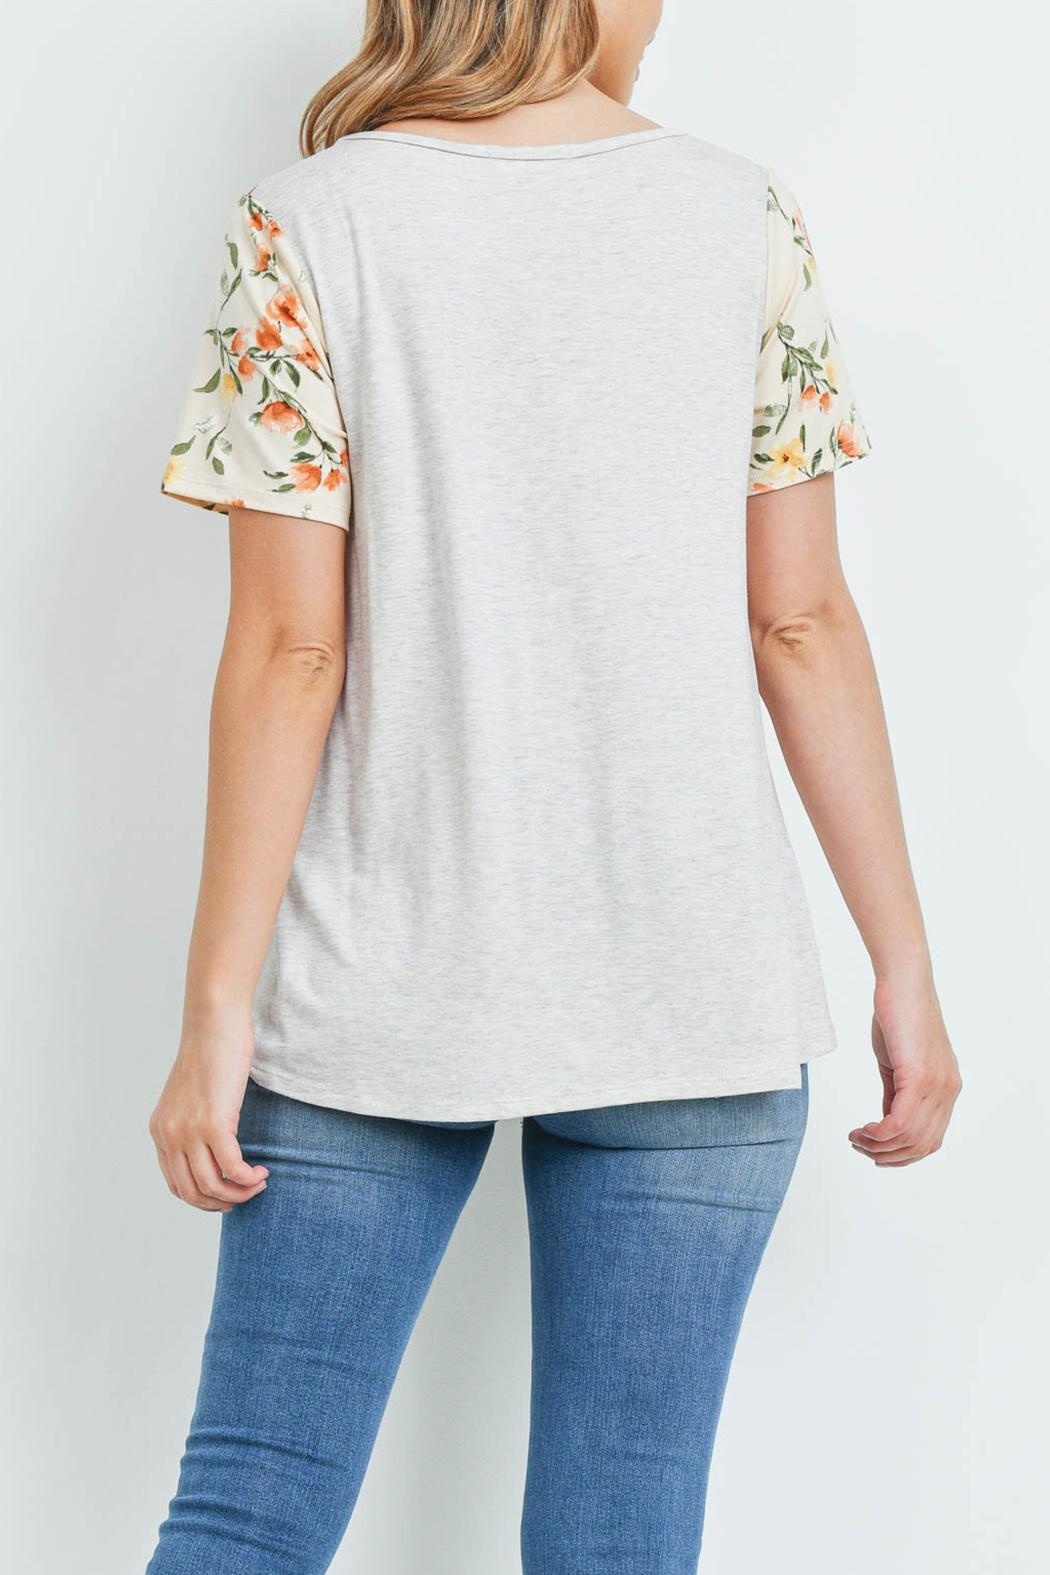 Riah Fashion Floral-Contrast-Two-Toned-V-Neck-Top - Front Full Image